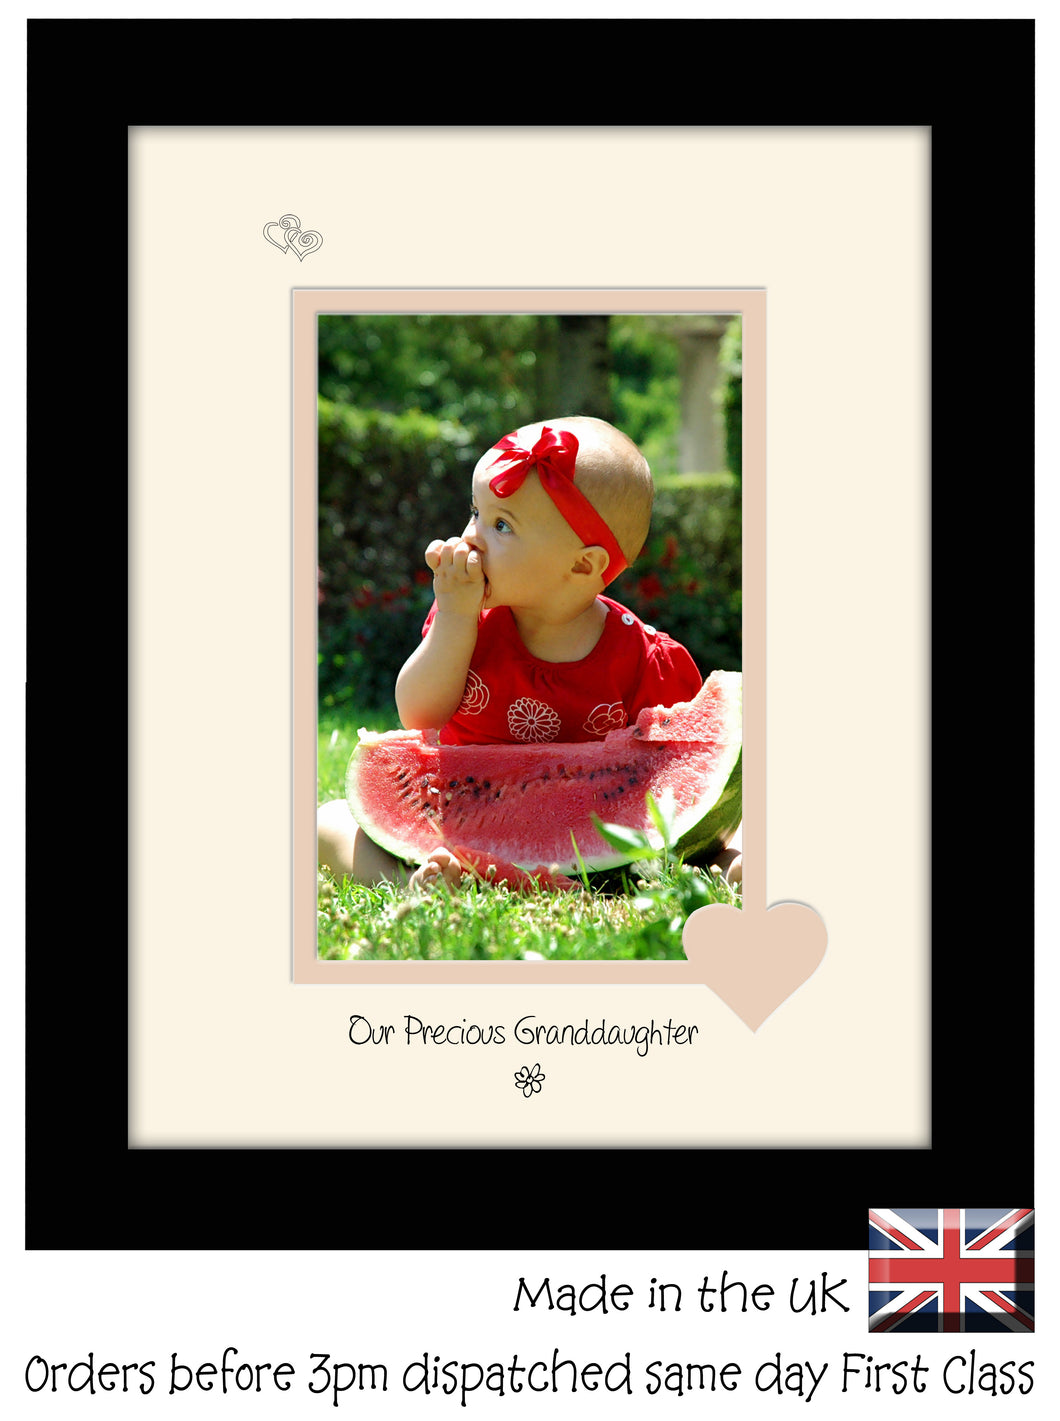 Granddaughter Photo Frame - Our precious Granddaughter Portrait photo frame 6